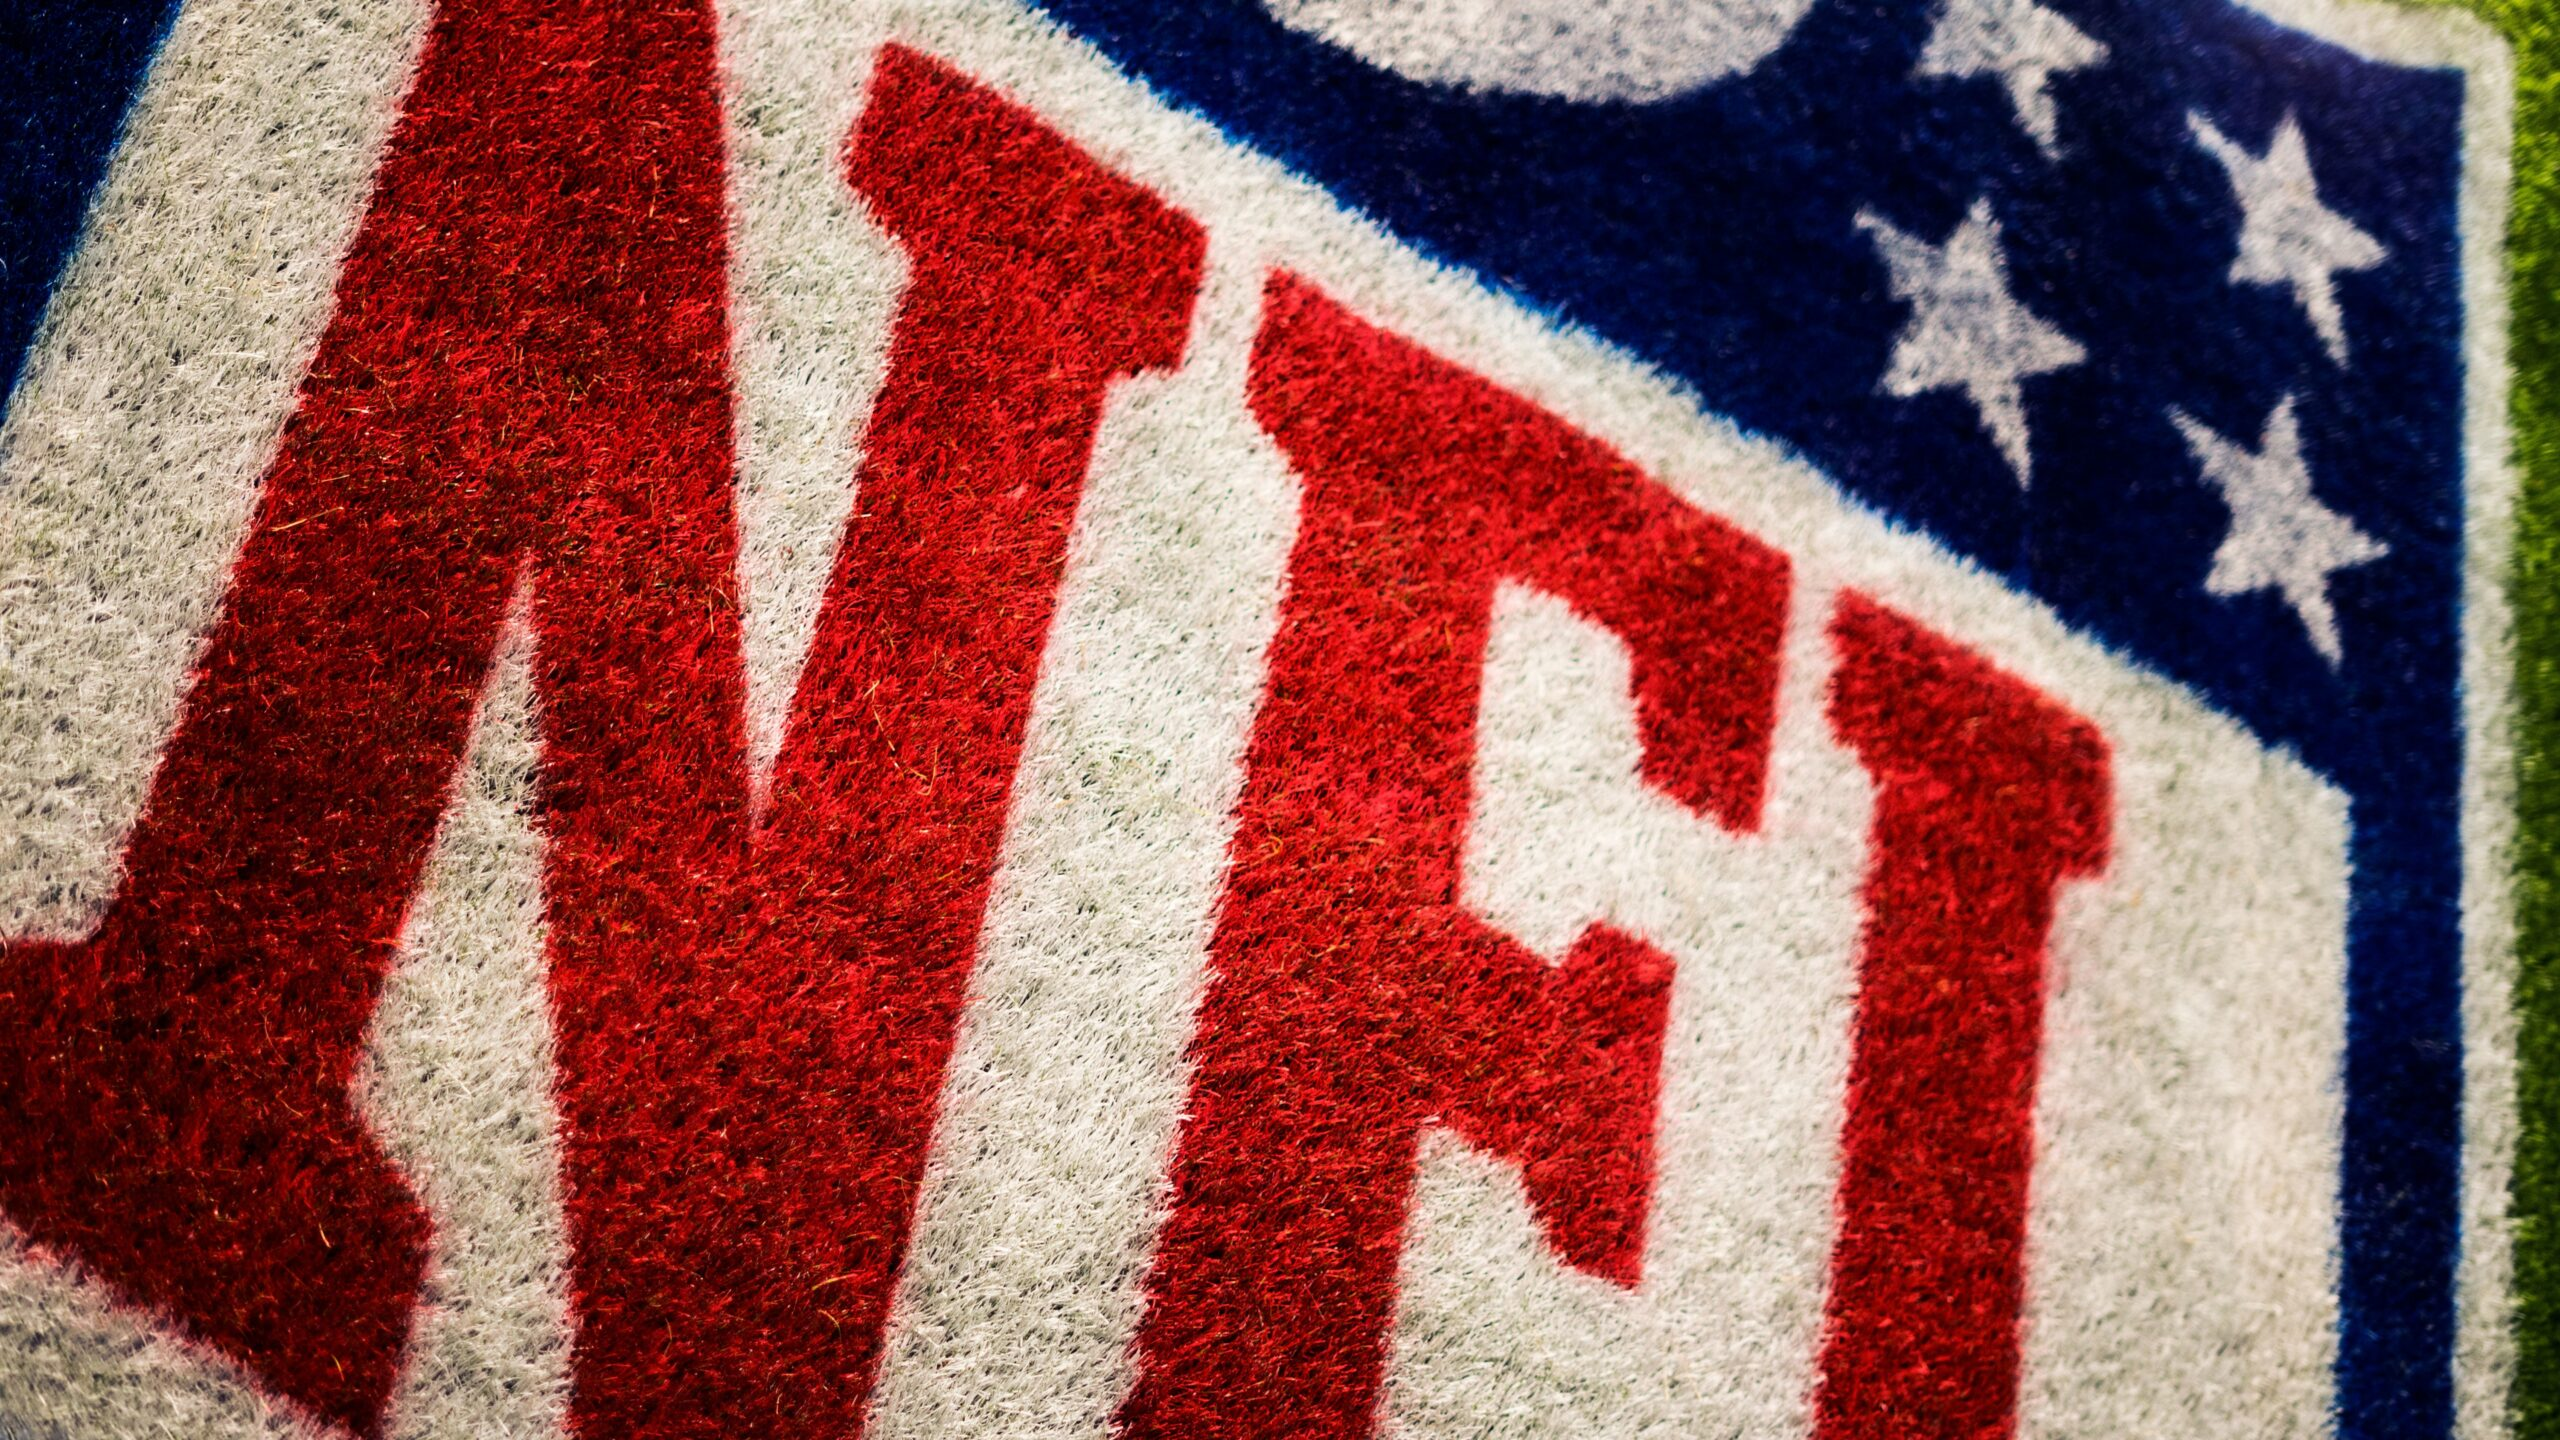 Close up of the NFL logo